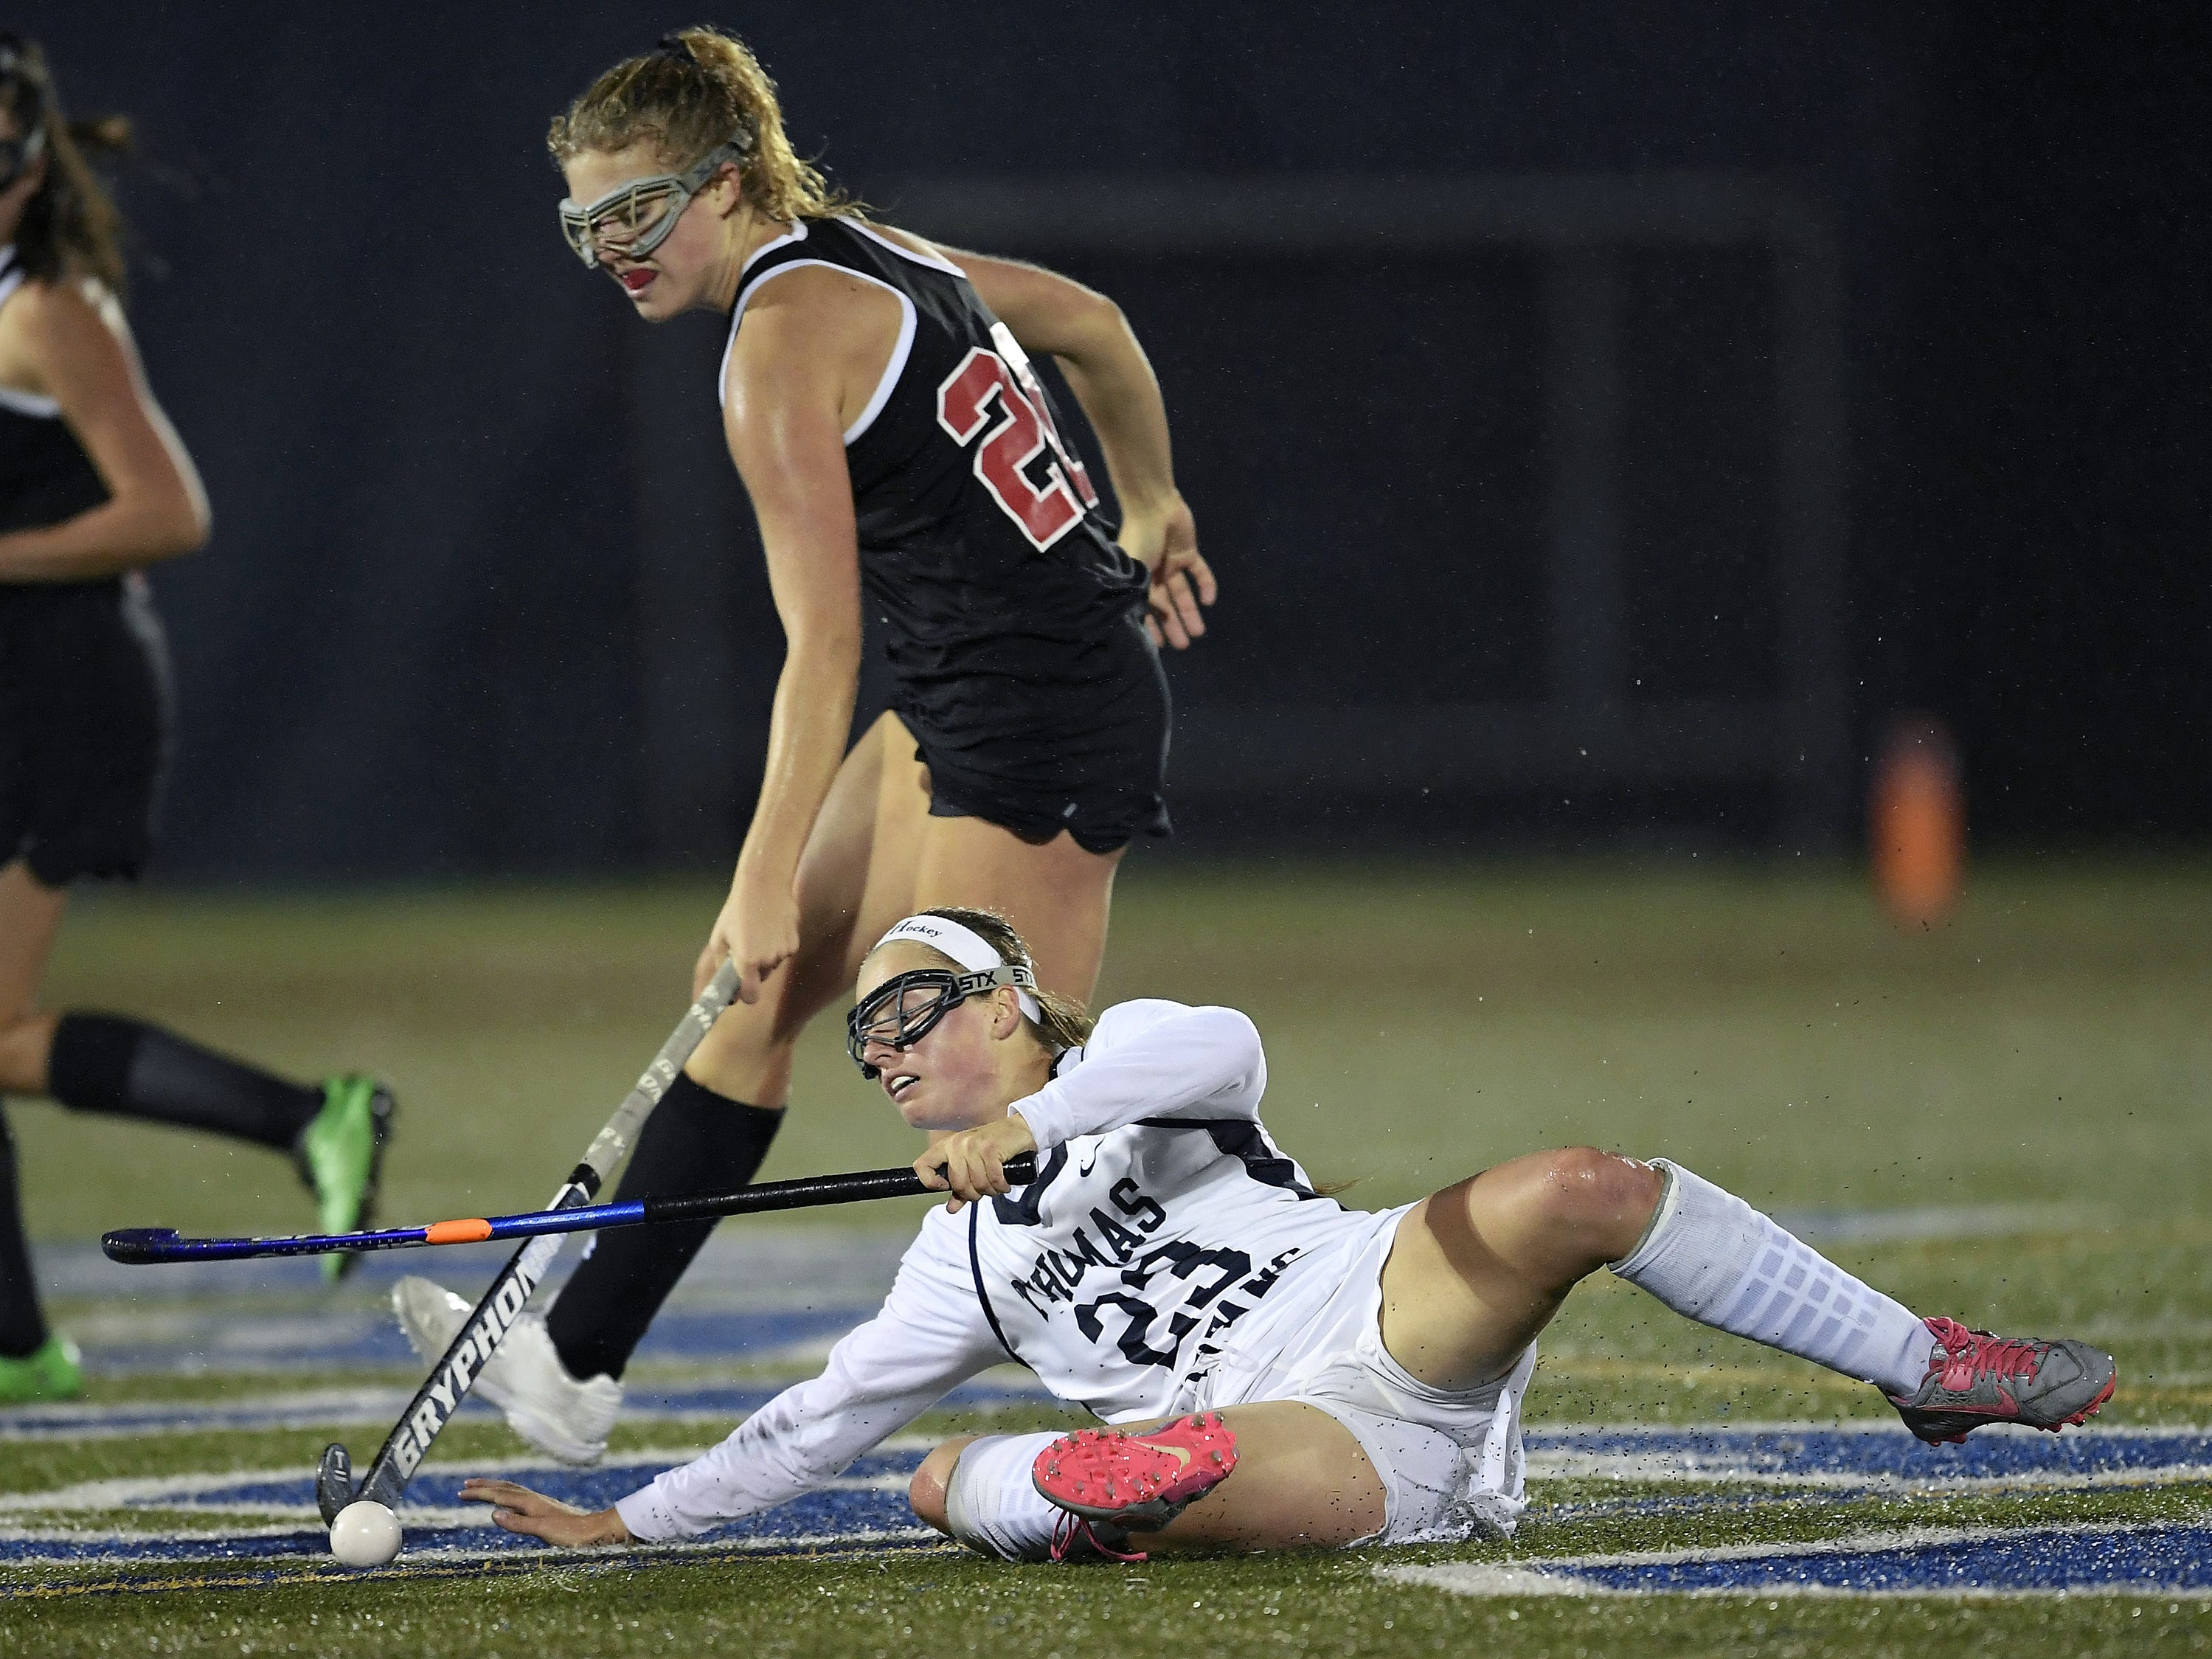 Webster Thomas' Victoria Vahl, bottom, goes to ground while defended by Penfield's Hope Wilder during a regular season game played at Webster Thomas High School, Monday, Oct. 1, 2018. Penfield beat Webster Thomas in overtime 2-1.